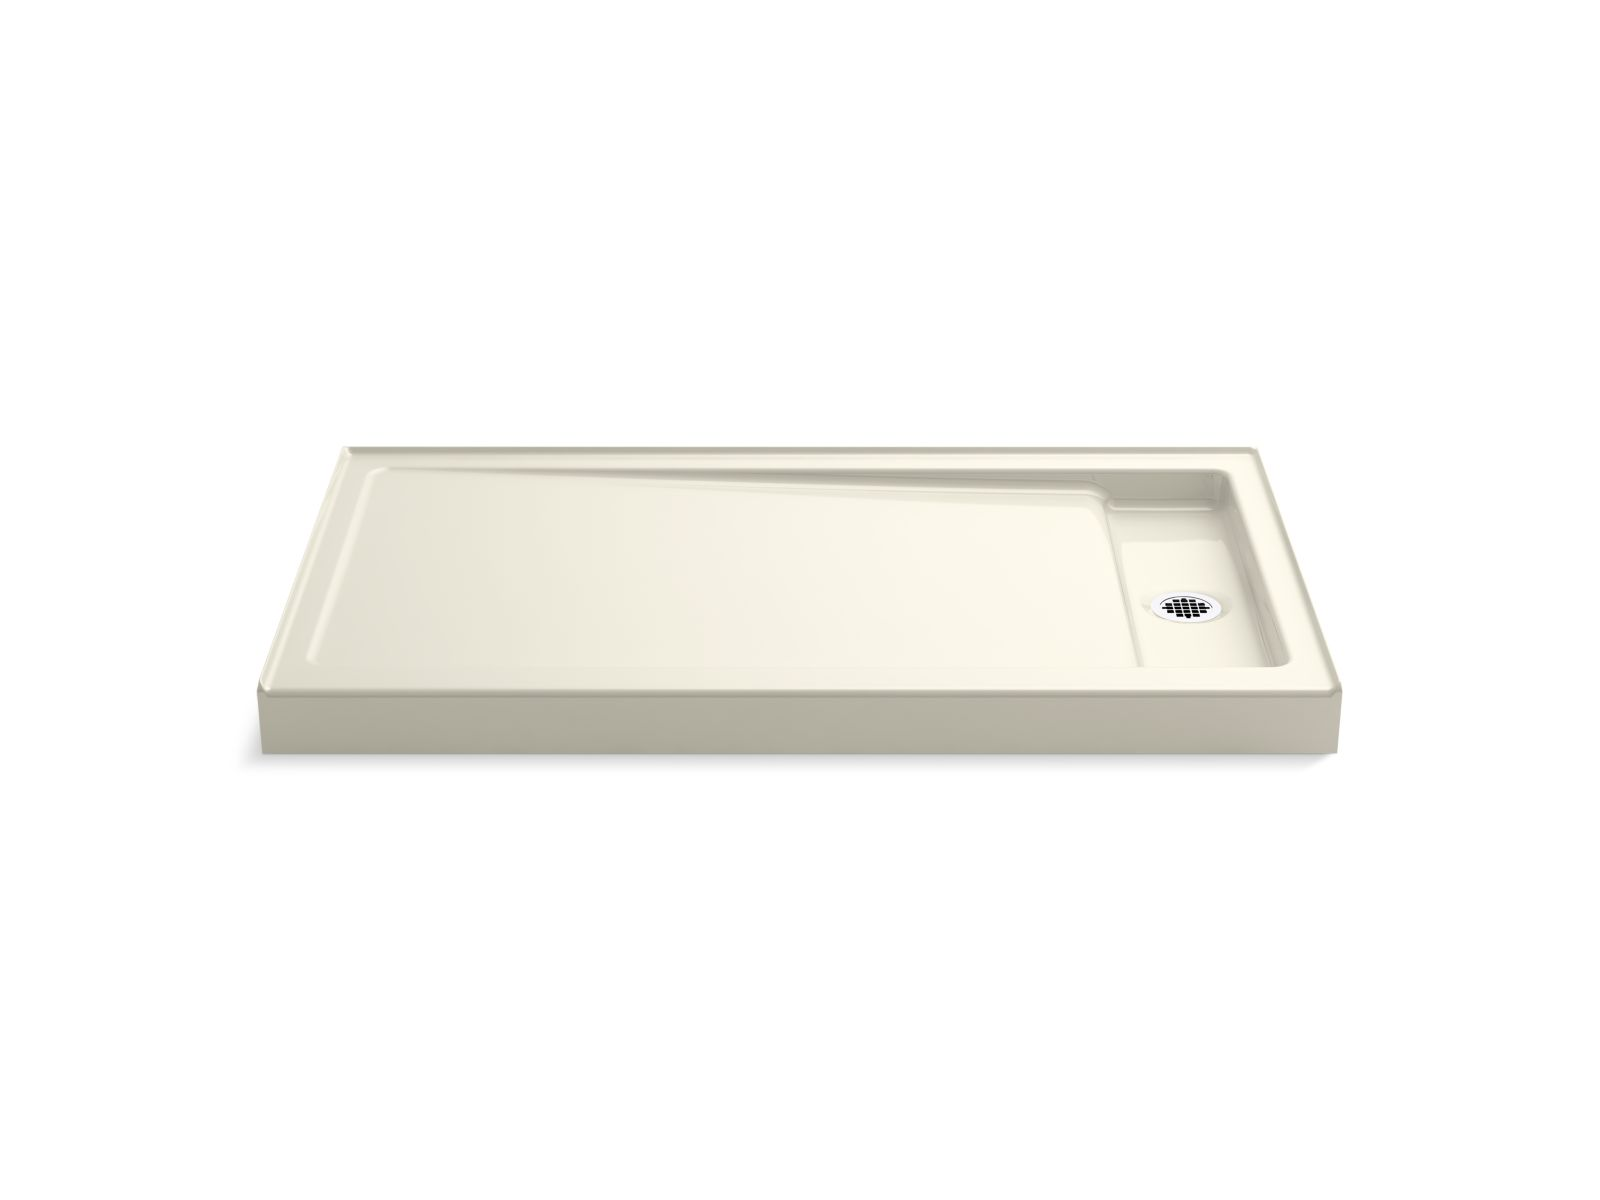 "Kohler Bellwether® K-9178-96 60"" x 34"" single-threshold shower base with right center drain Biscuit"